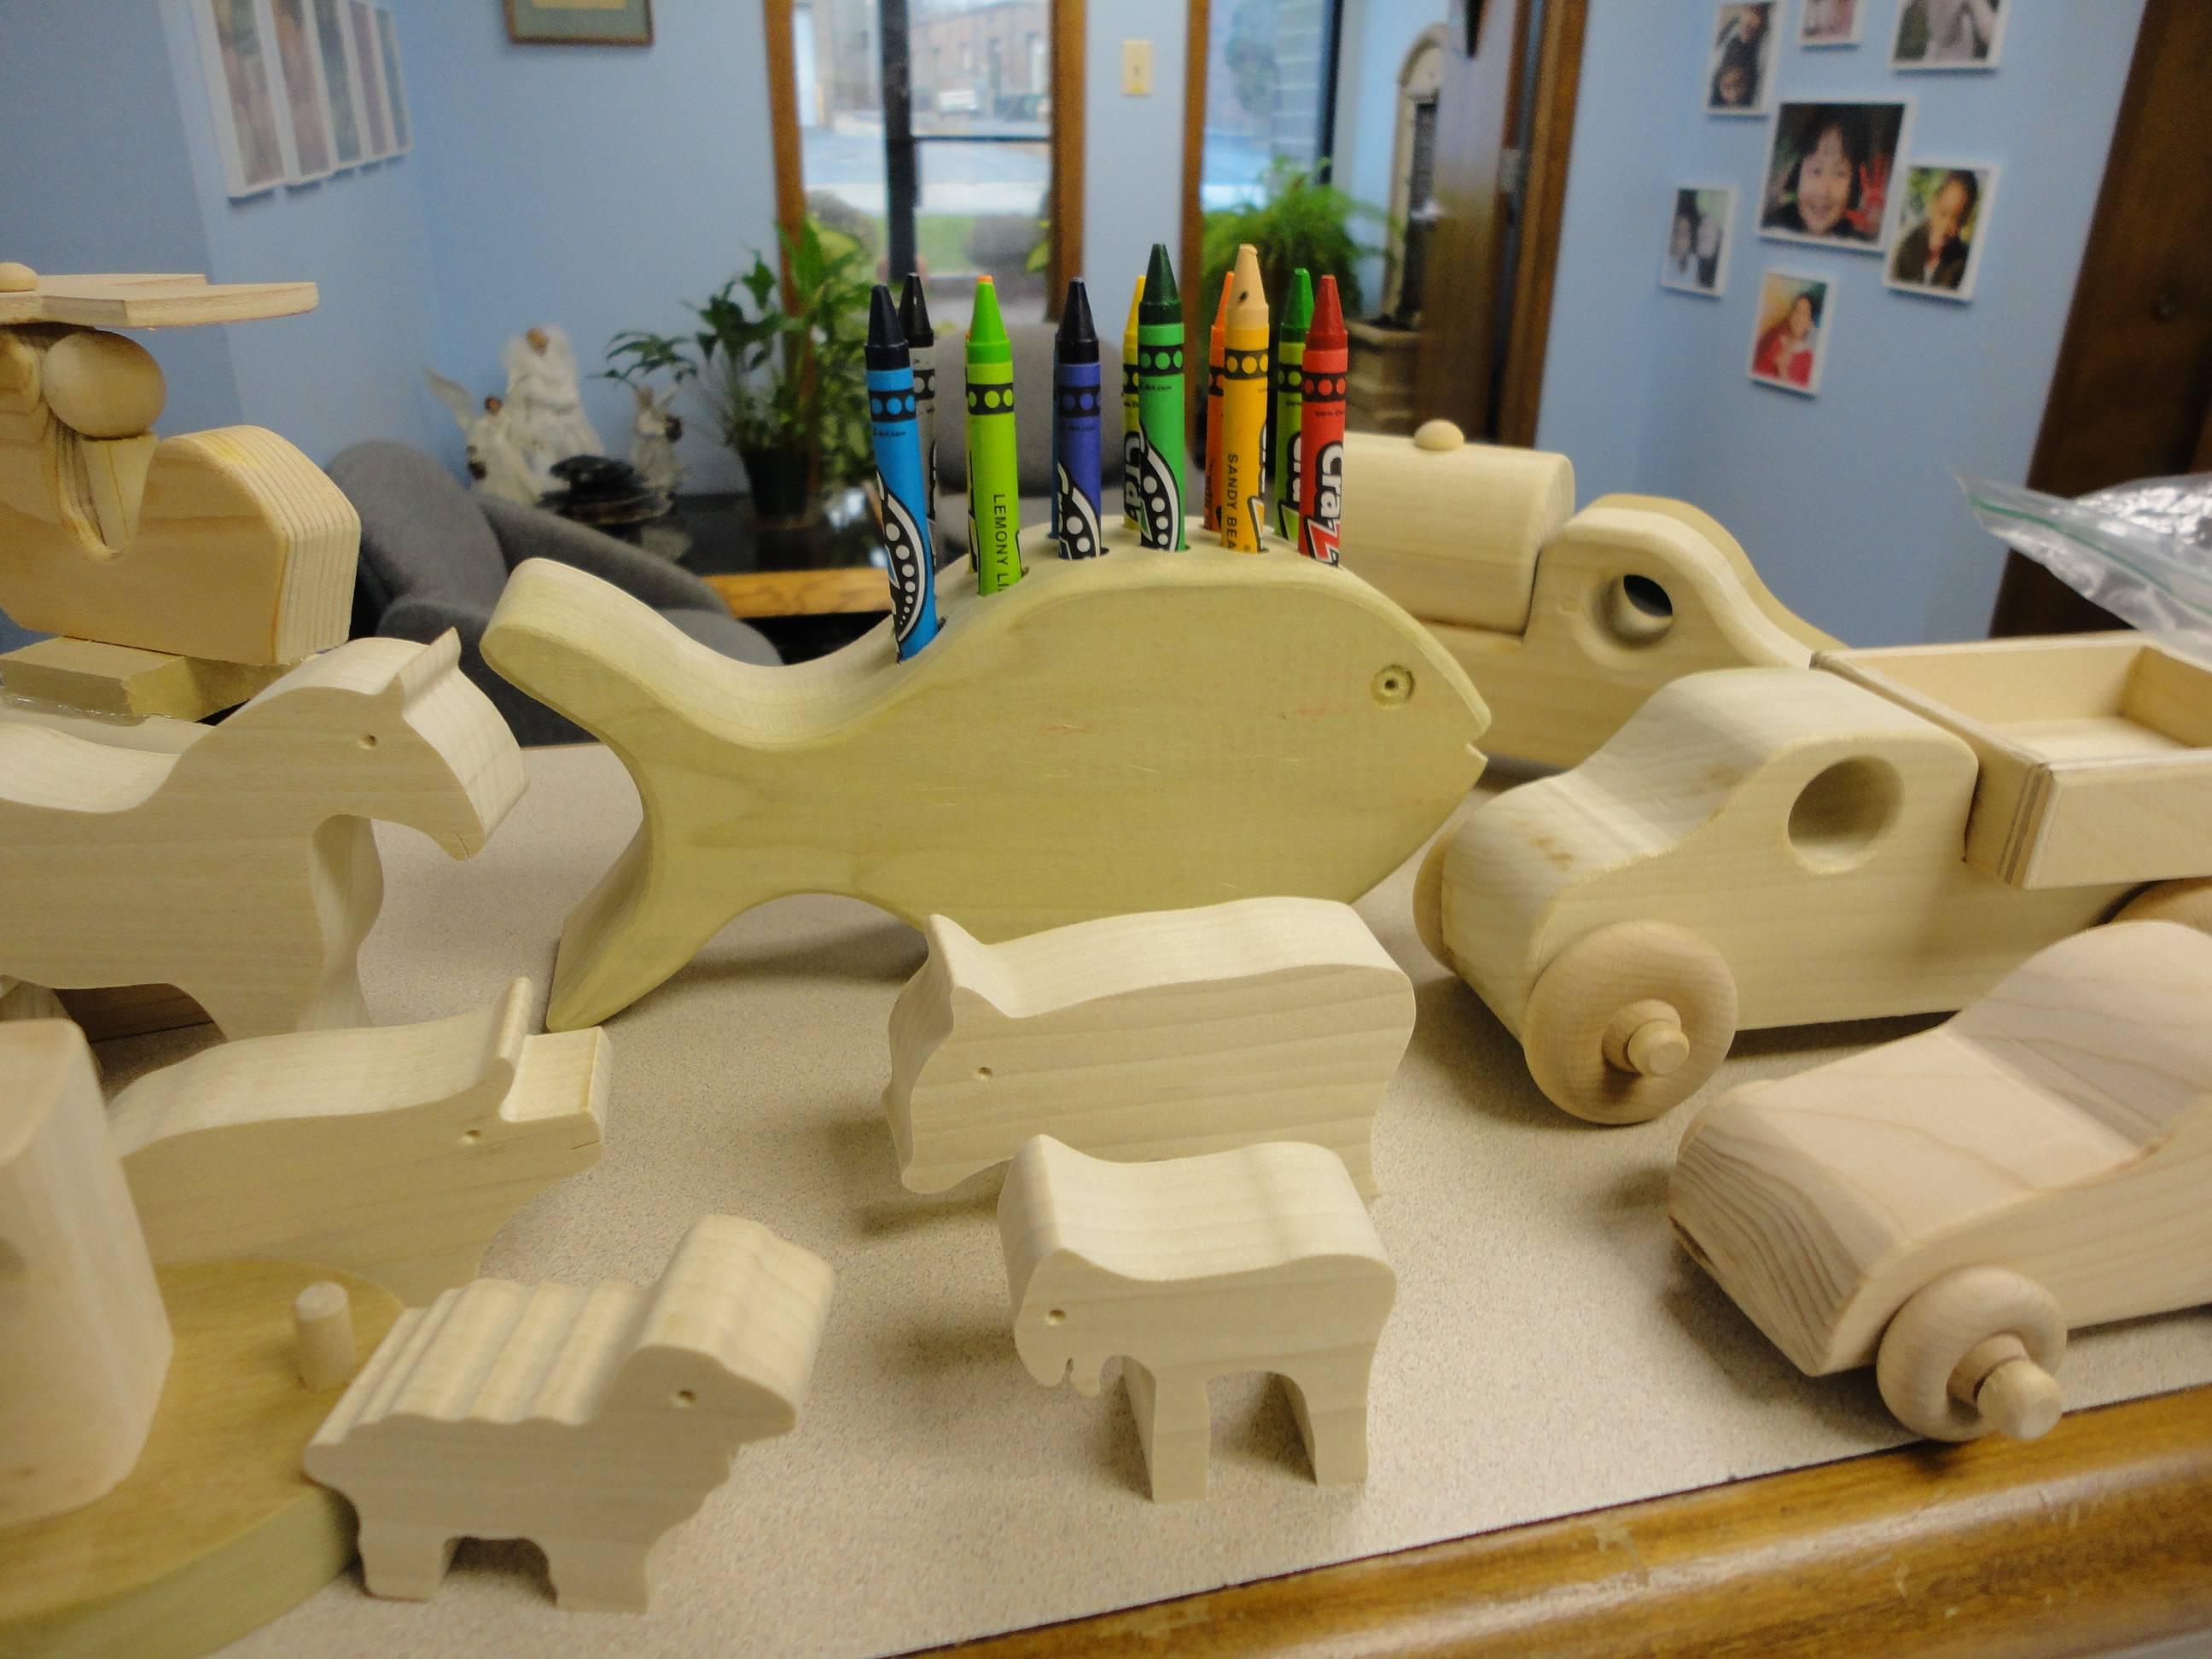 A few of the toys handcrafted by the DuPage Woodworkers Club.